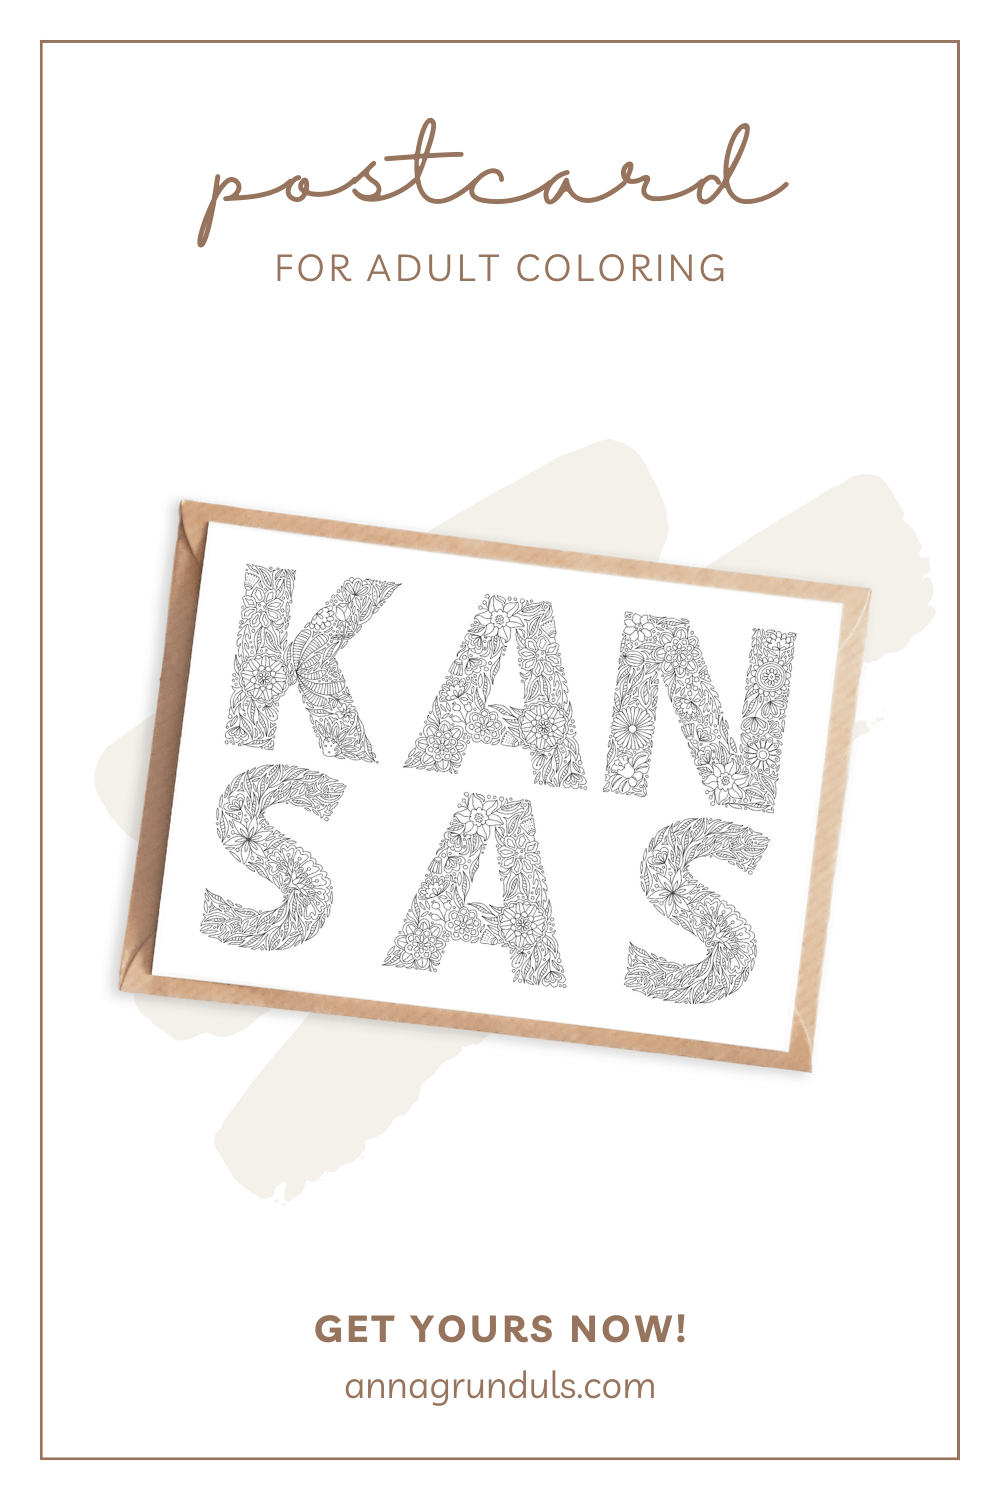 kansas postcard for adult coloring pinterest pin